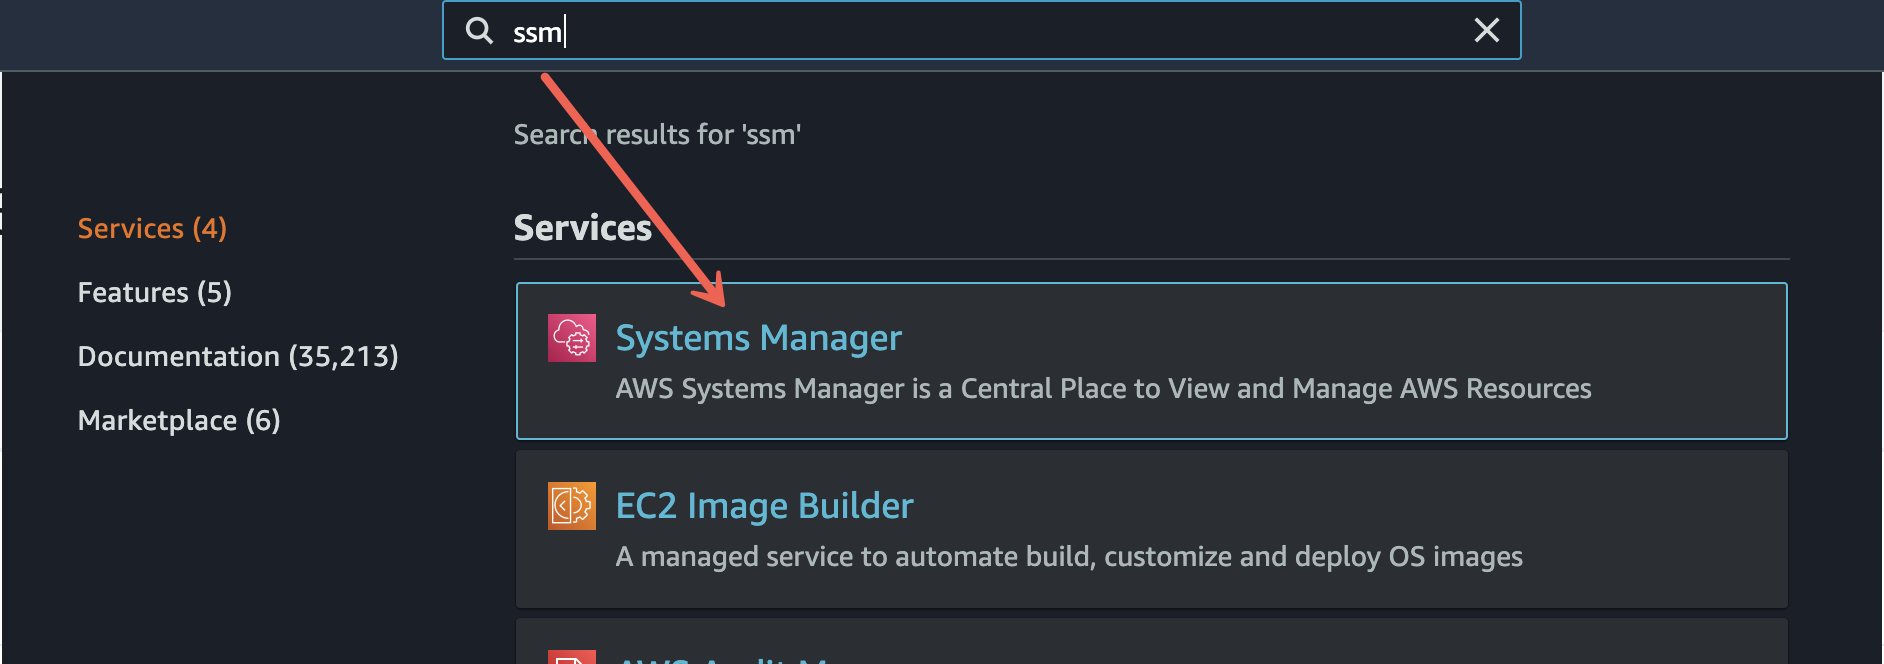 Navigating to the Systems Manager service in the Management Console